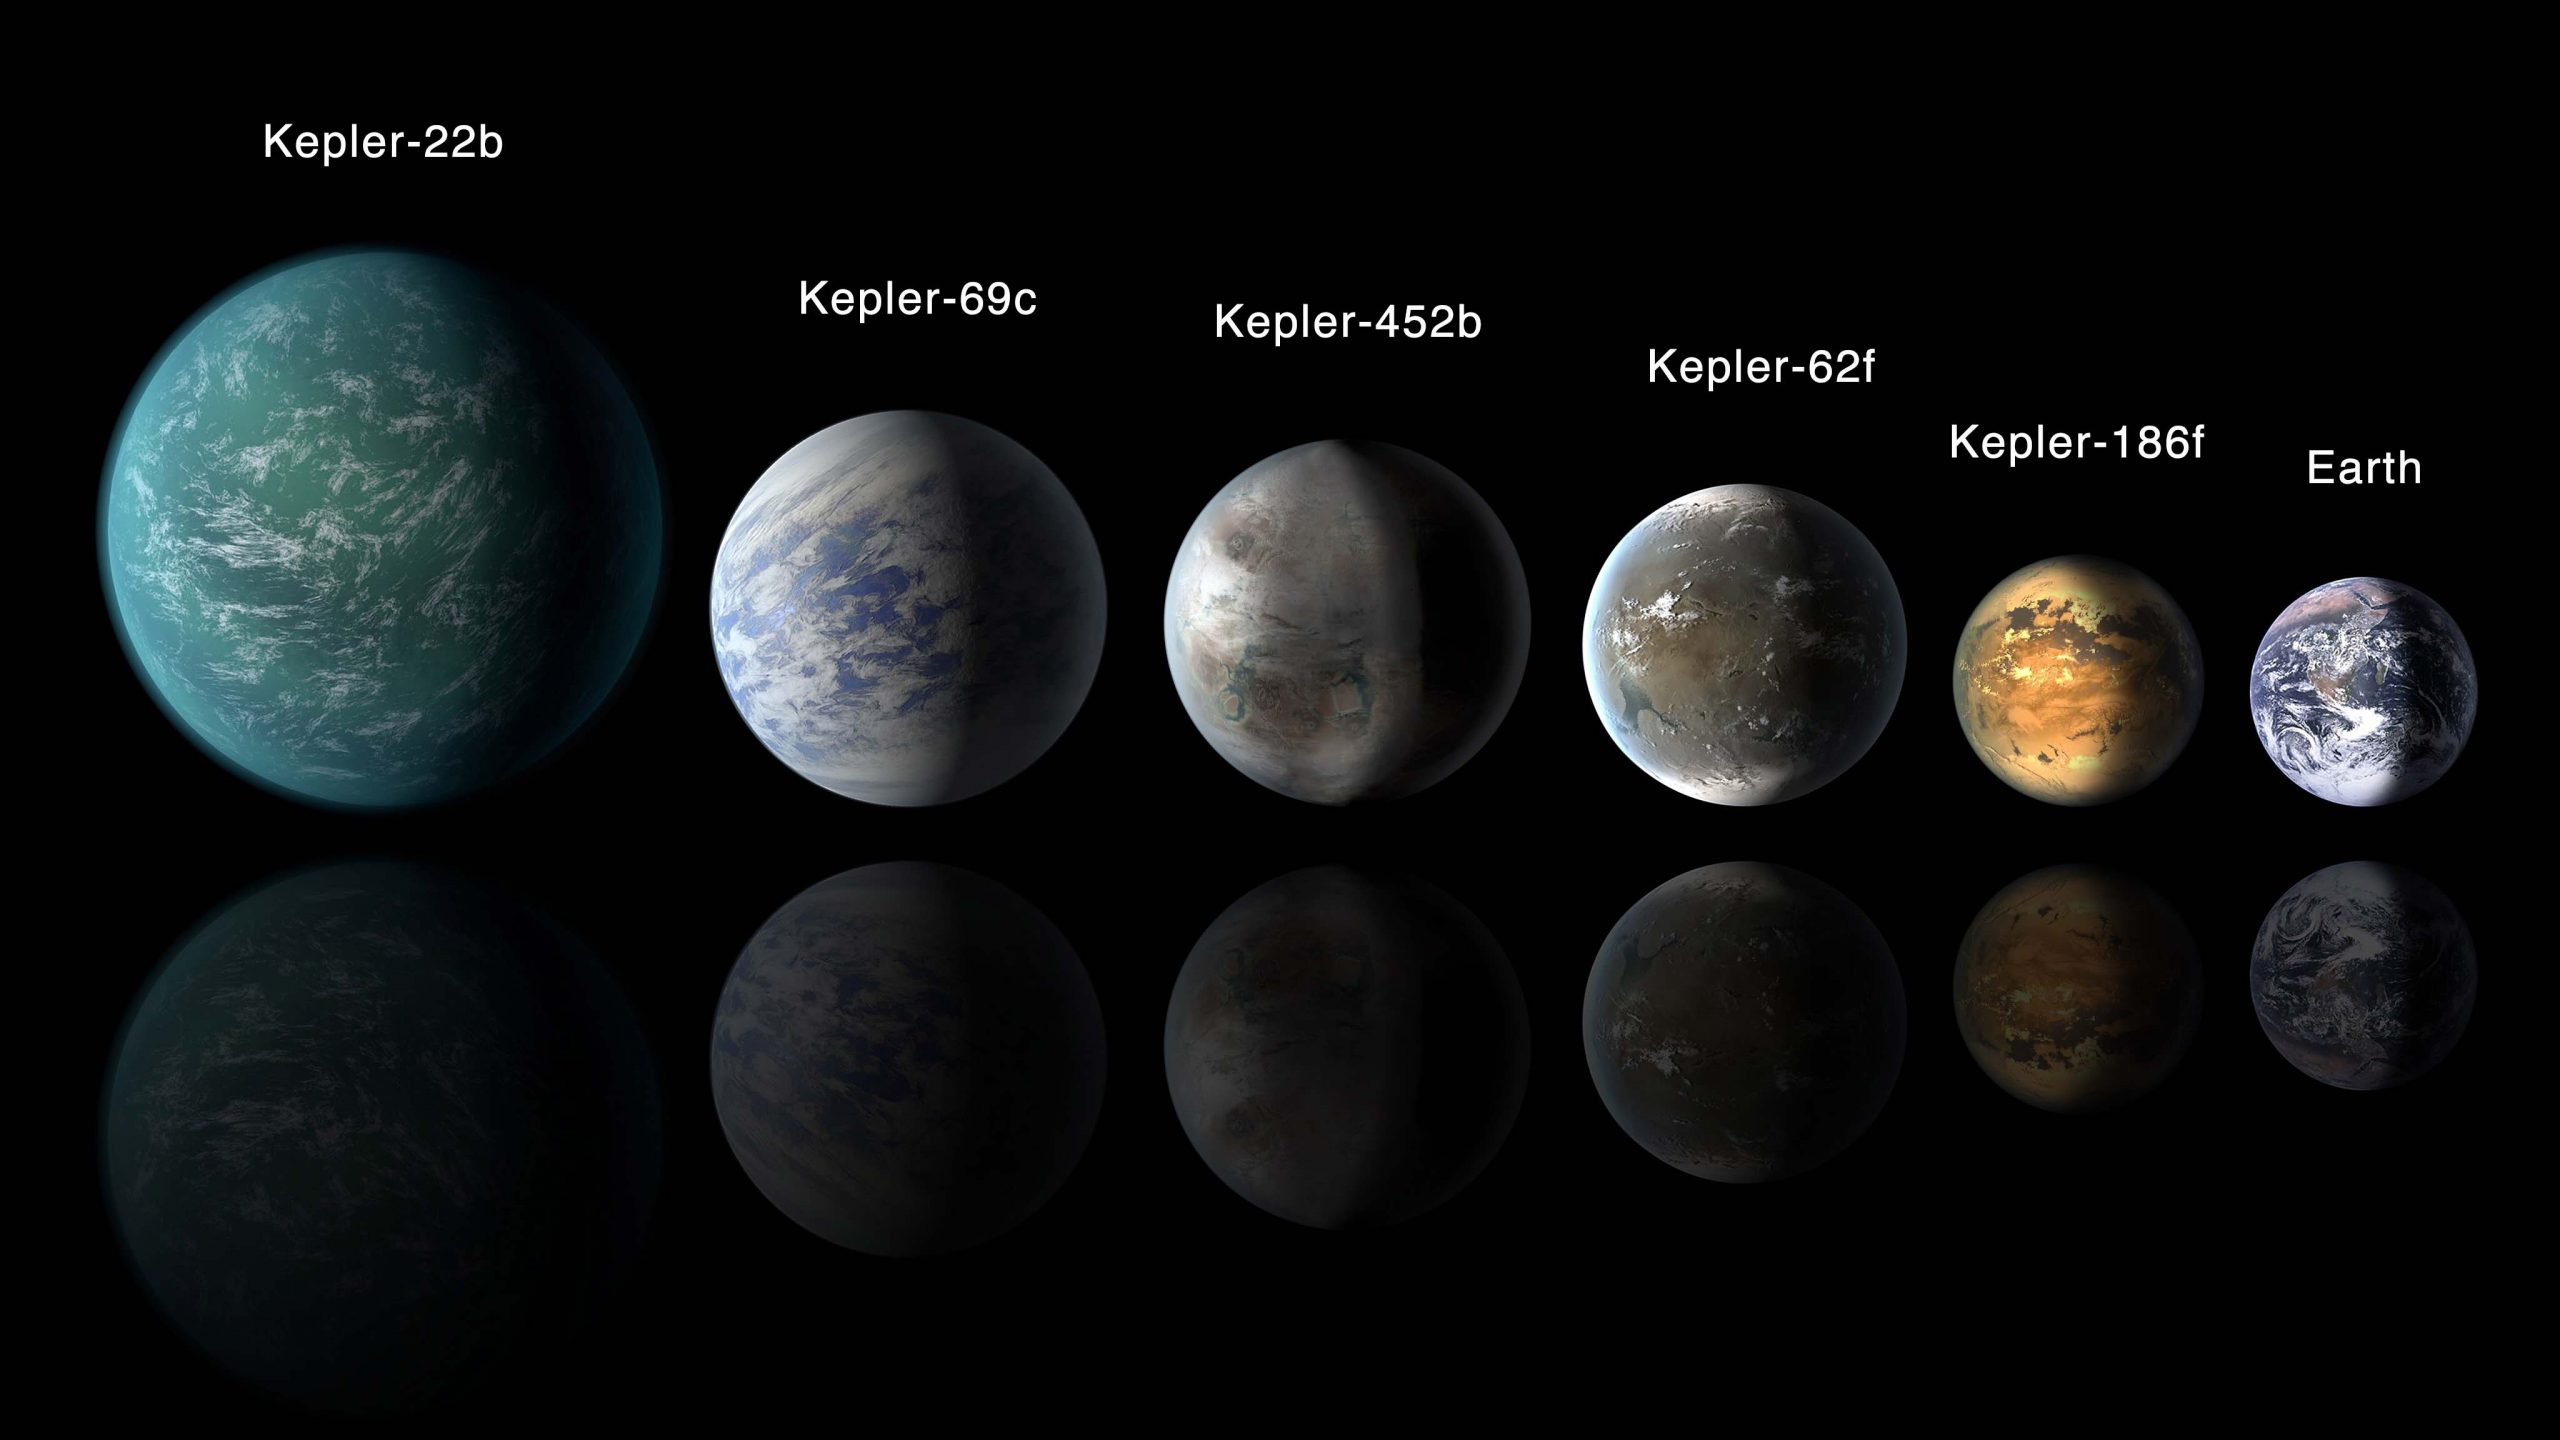 https://exoplanets.nasa.gov/system/resources/detail_files/257_EarthlikeExoplanets_0722sm.jpg